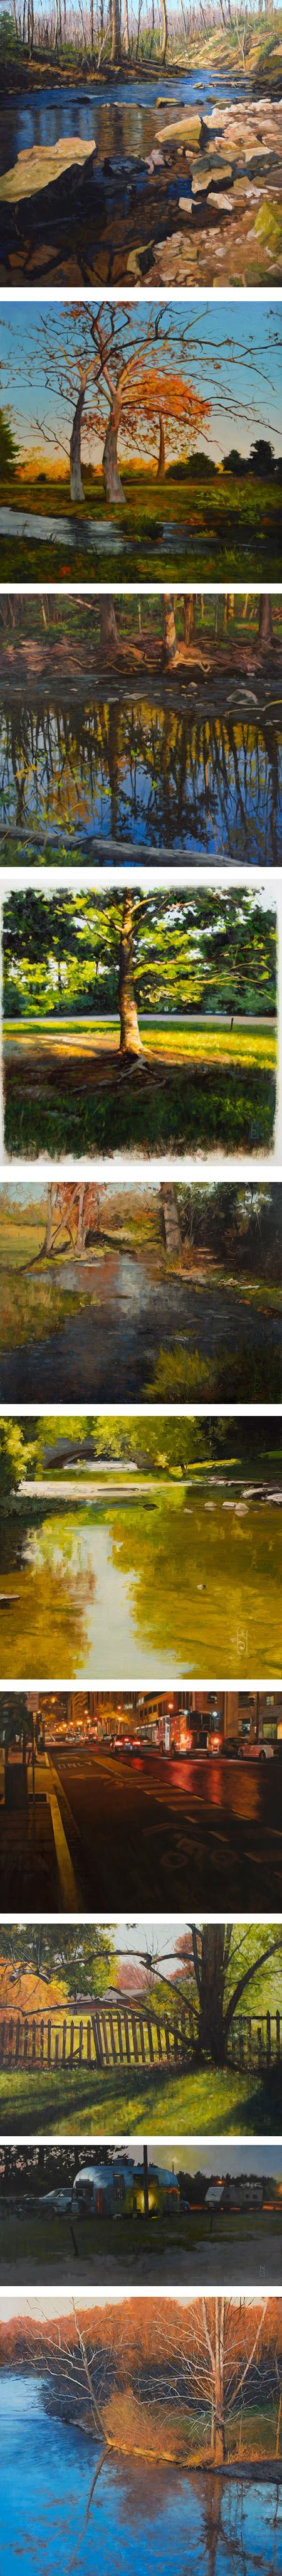 Steven S. Walker, landscape paintings